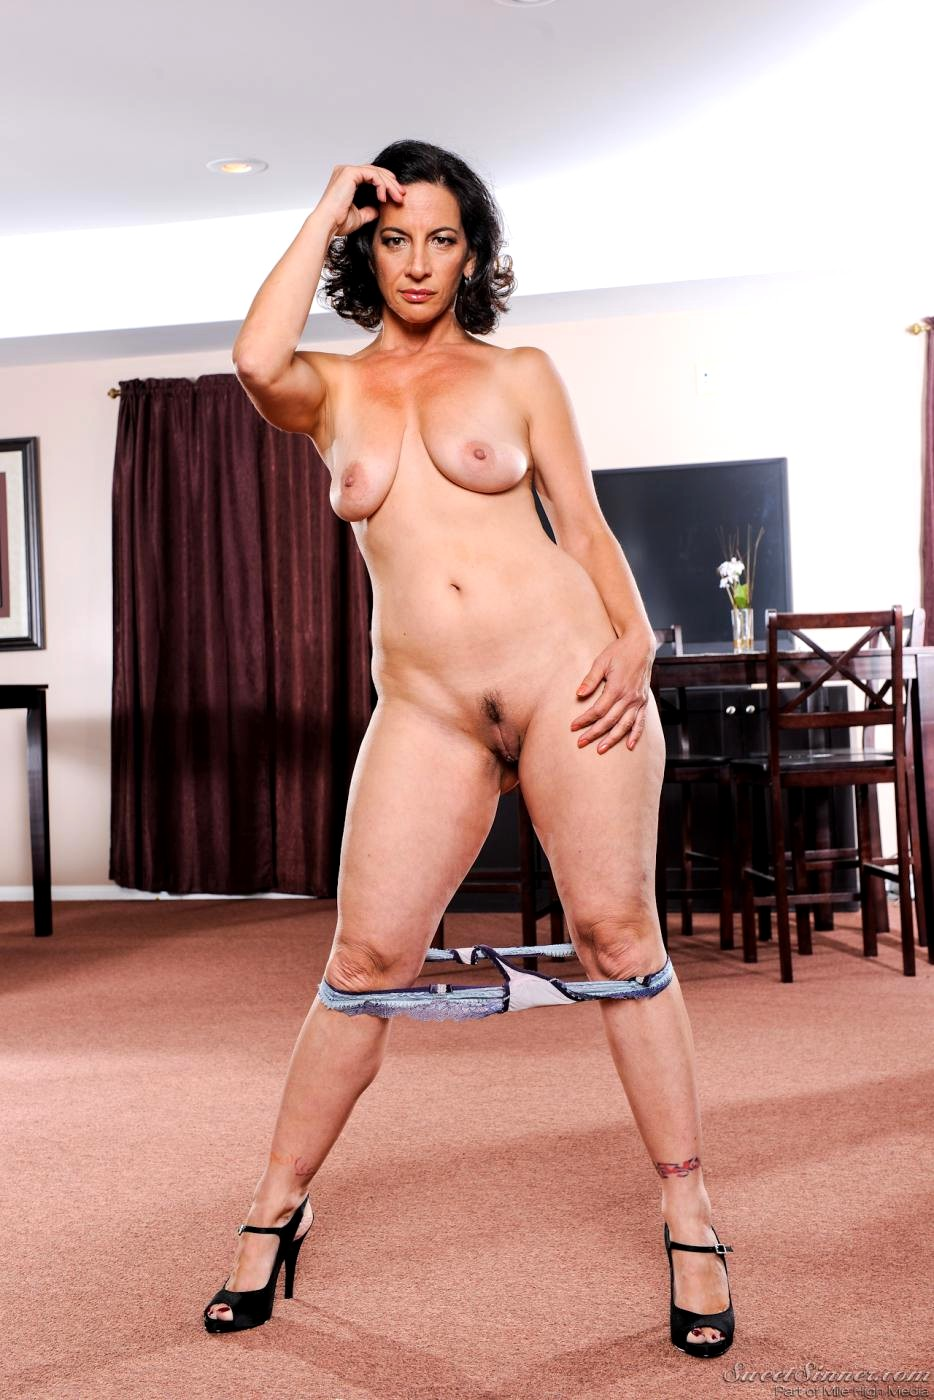 Milf gallery softcore seems